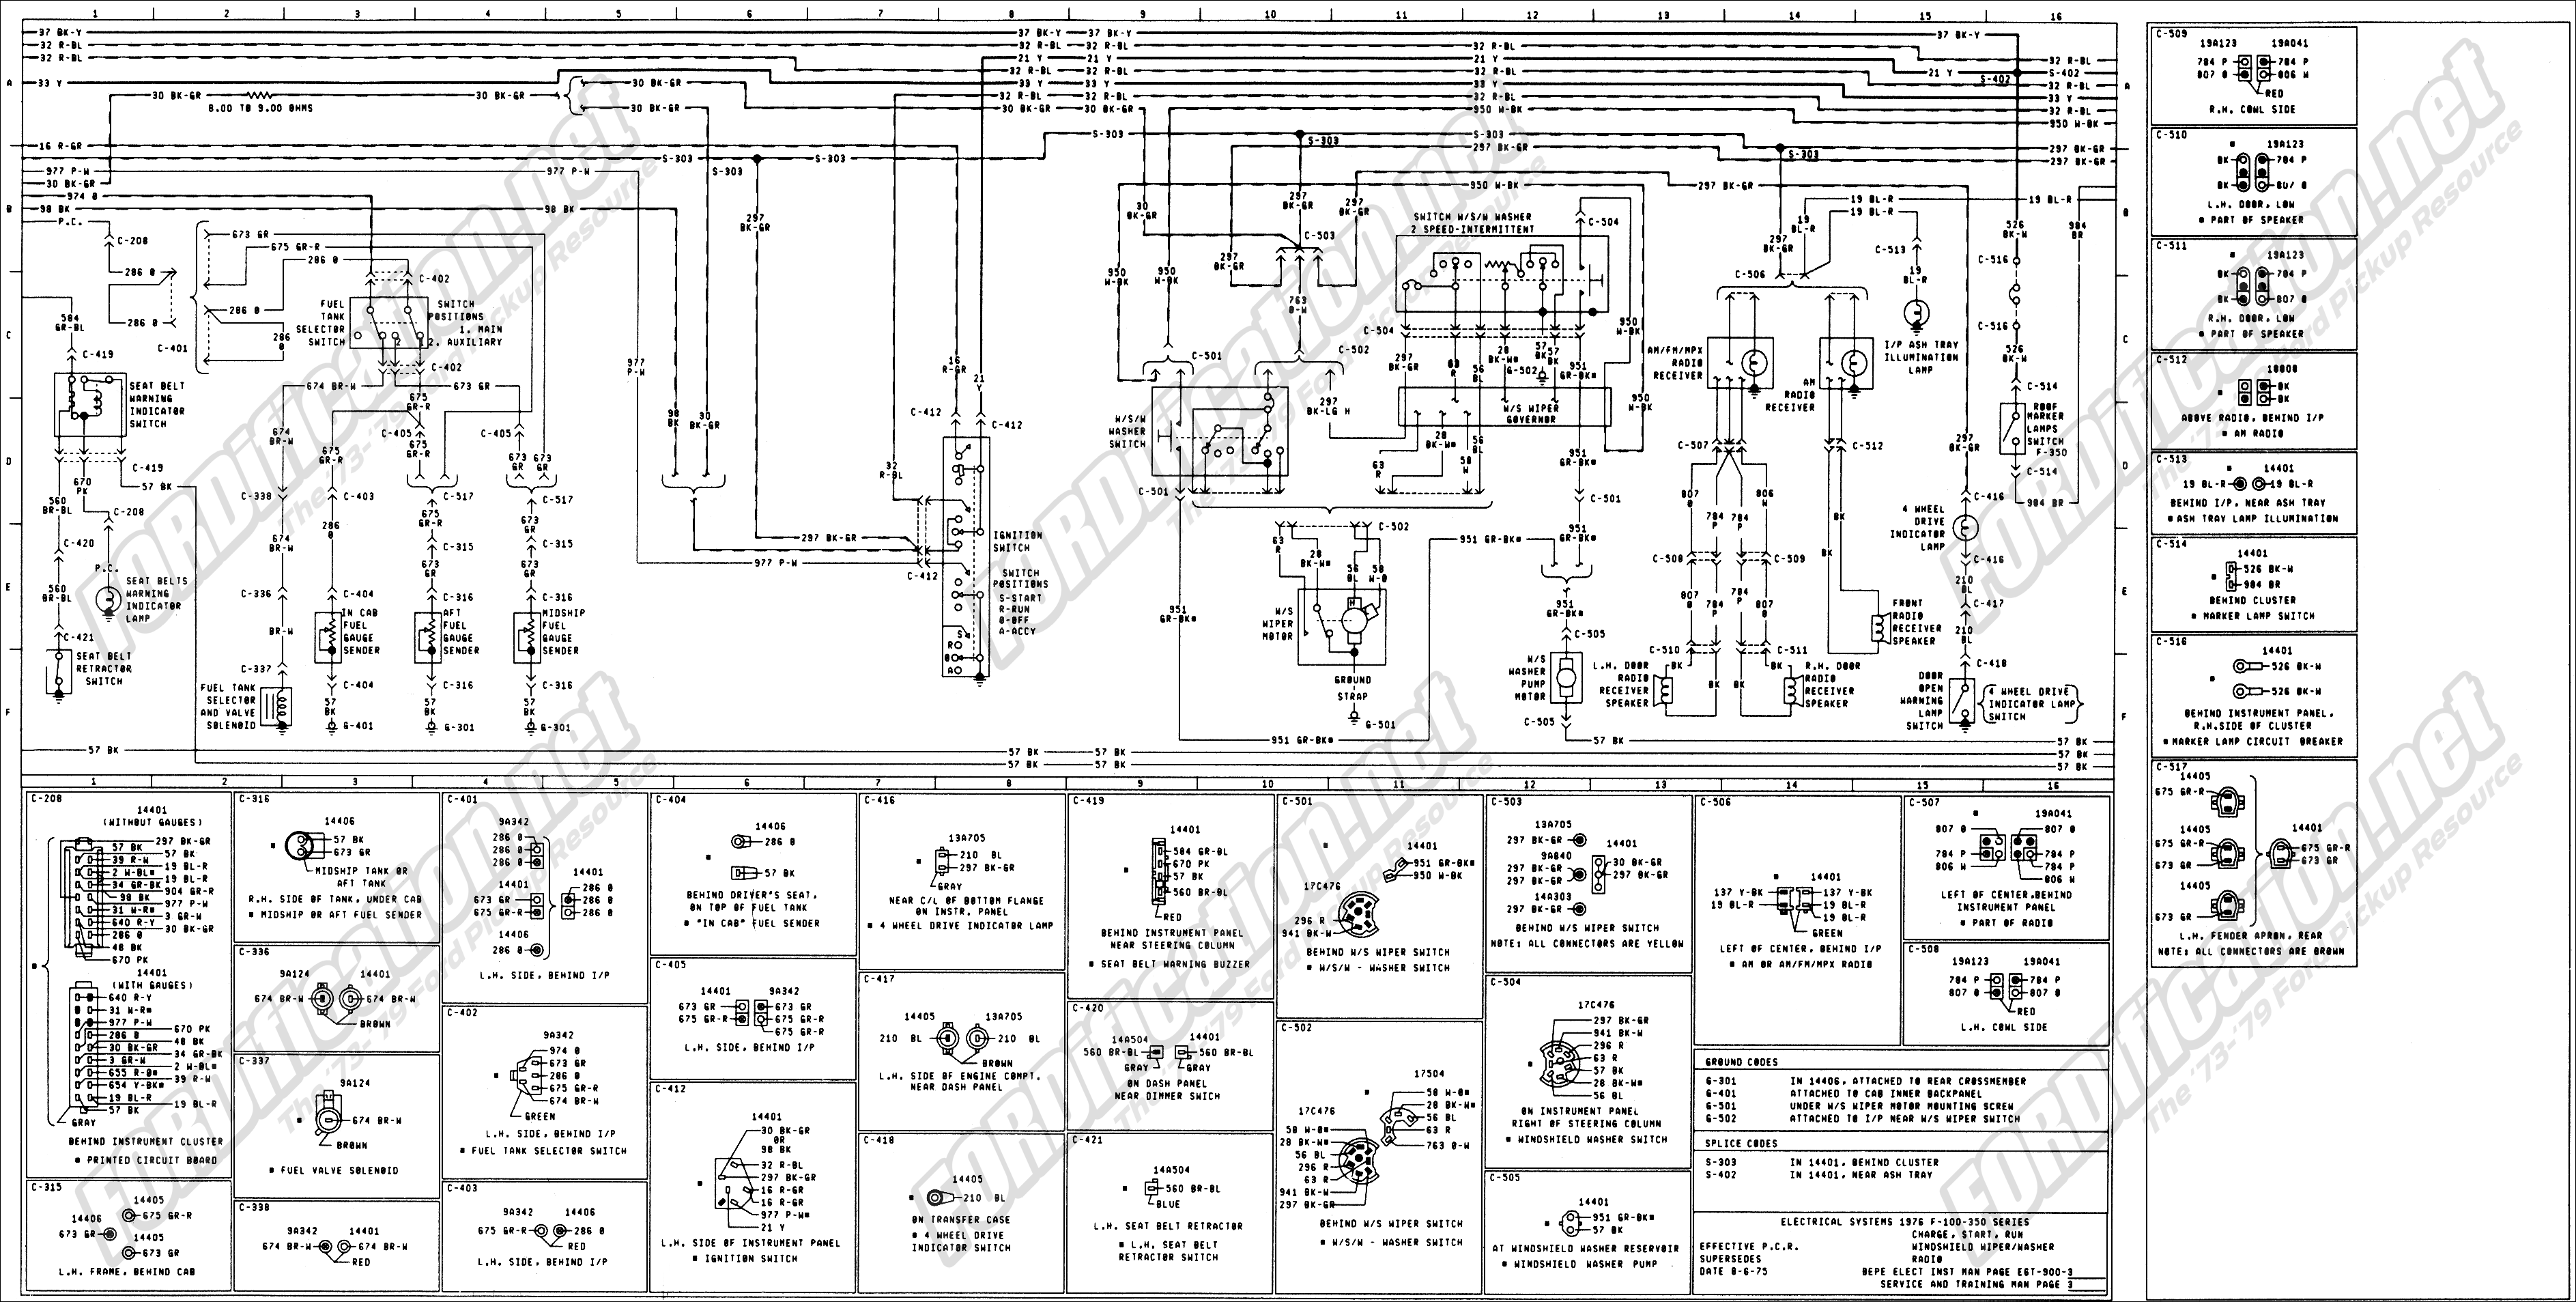 wiring_76master_3of9 1973 1979 ford truck wiring diagrams & schematics fordification net Ford 3 Wire Alternator Diagram at bakdesigns.co